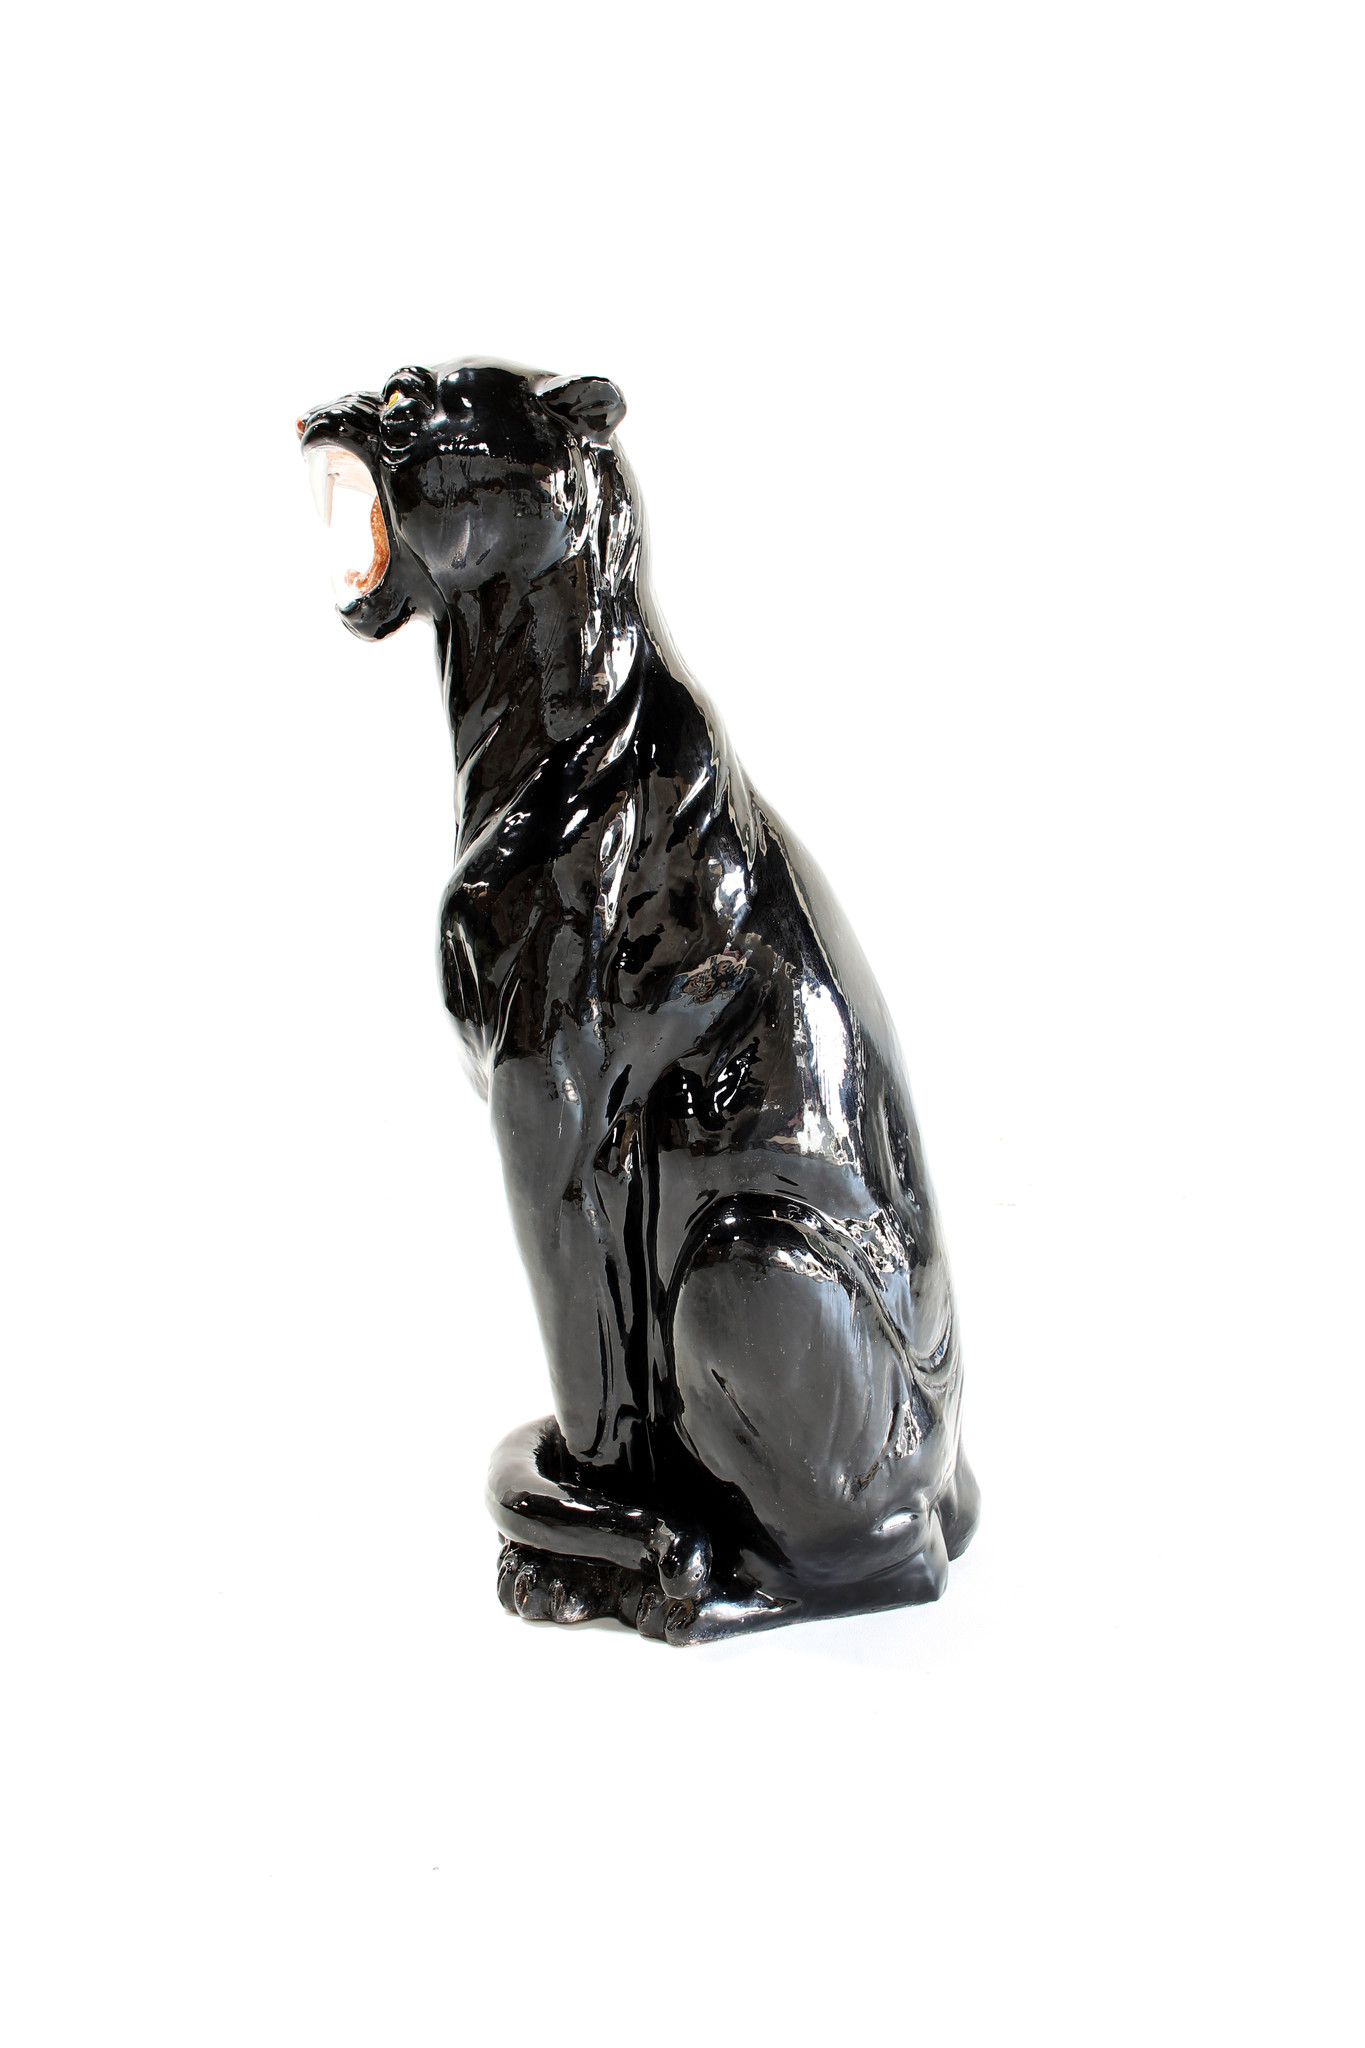 Black ceramic panther, 1970's